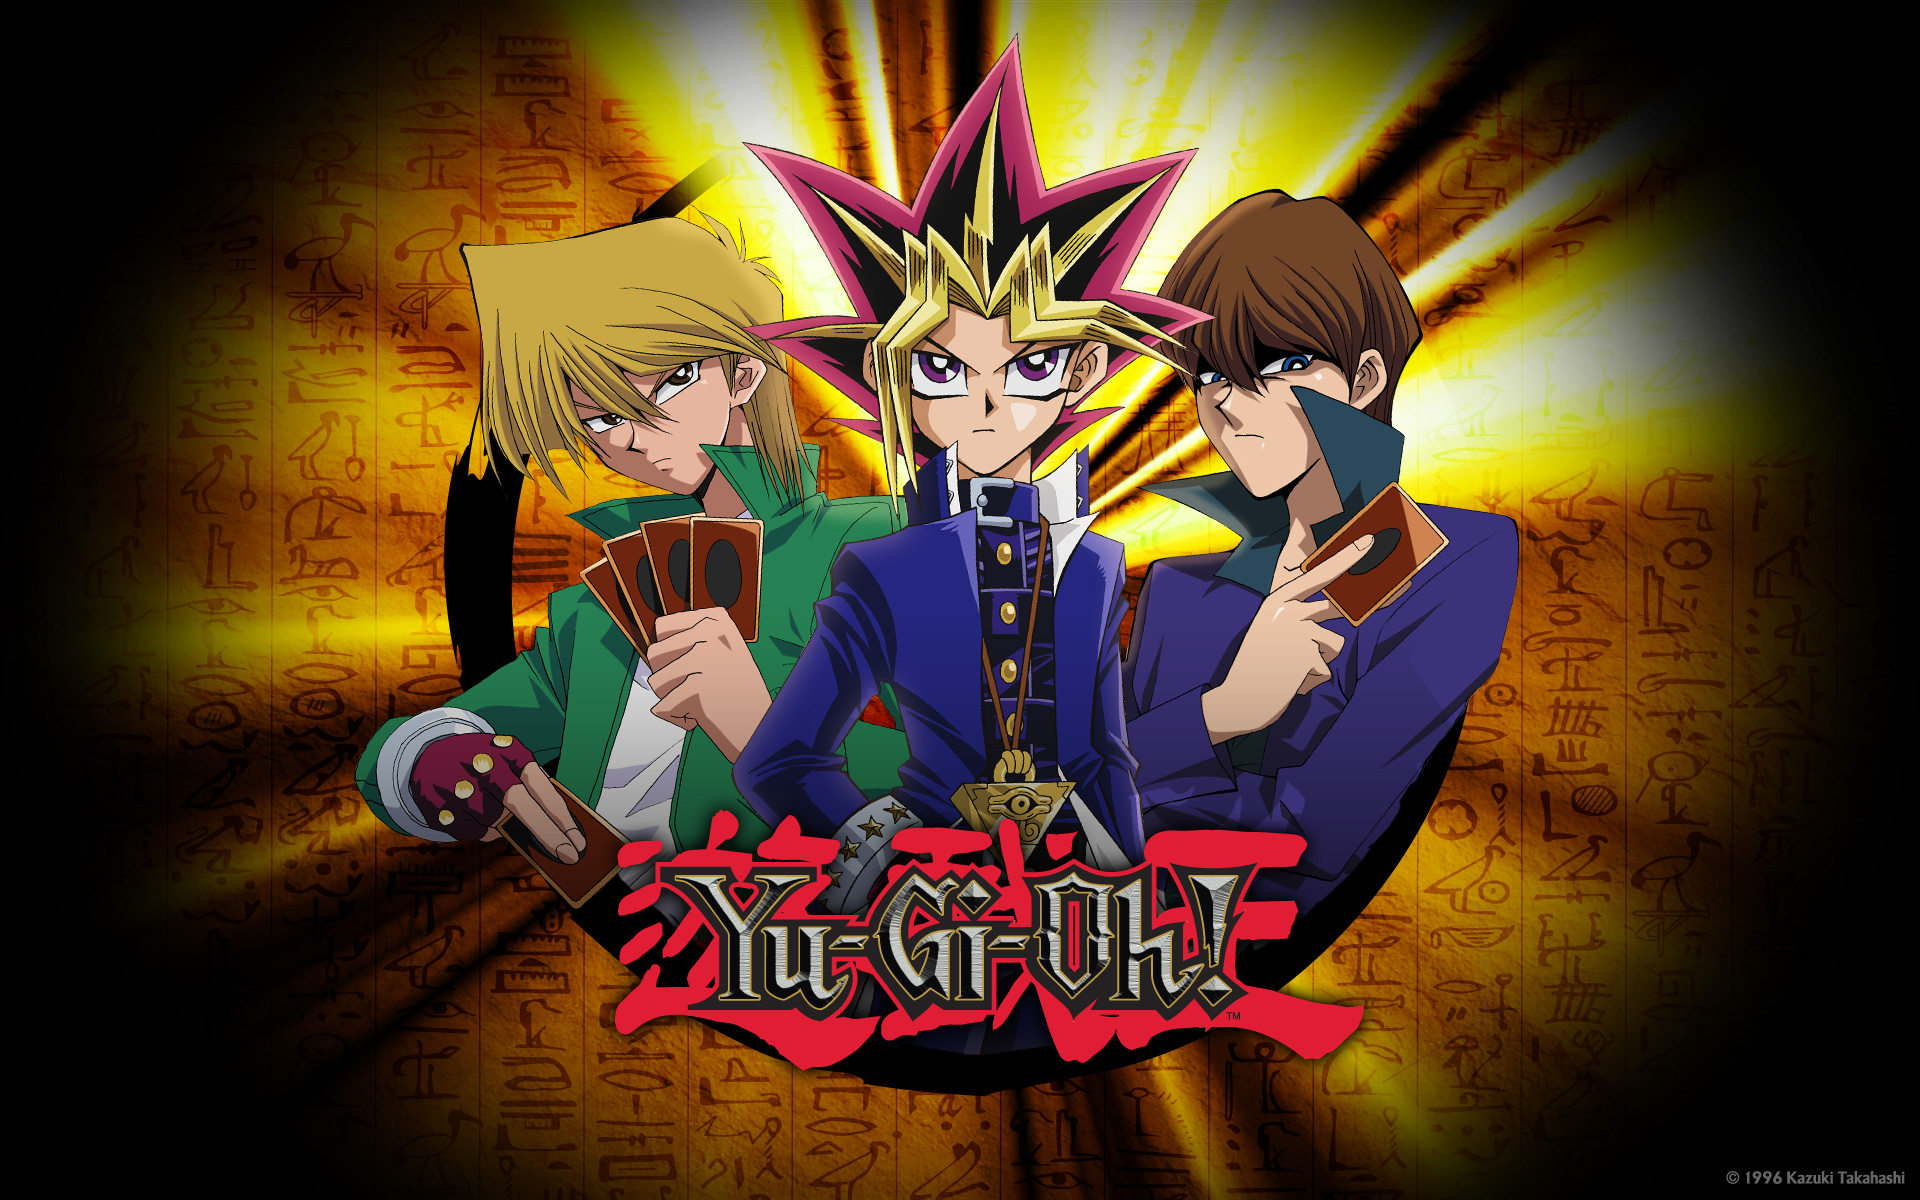 Yu-Gi-Oh! Backgrounds, Compatible - PC, Mobile, Gadgets| 1920x1200 px